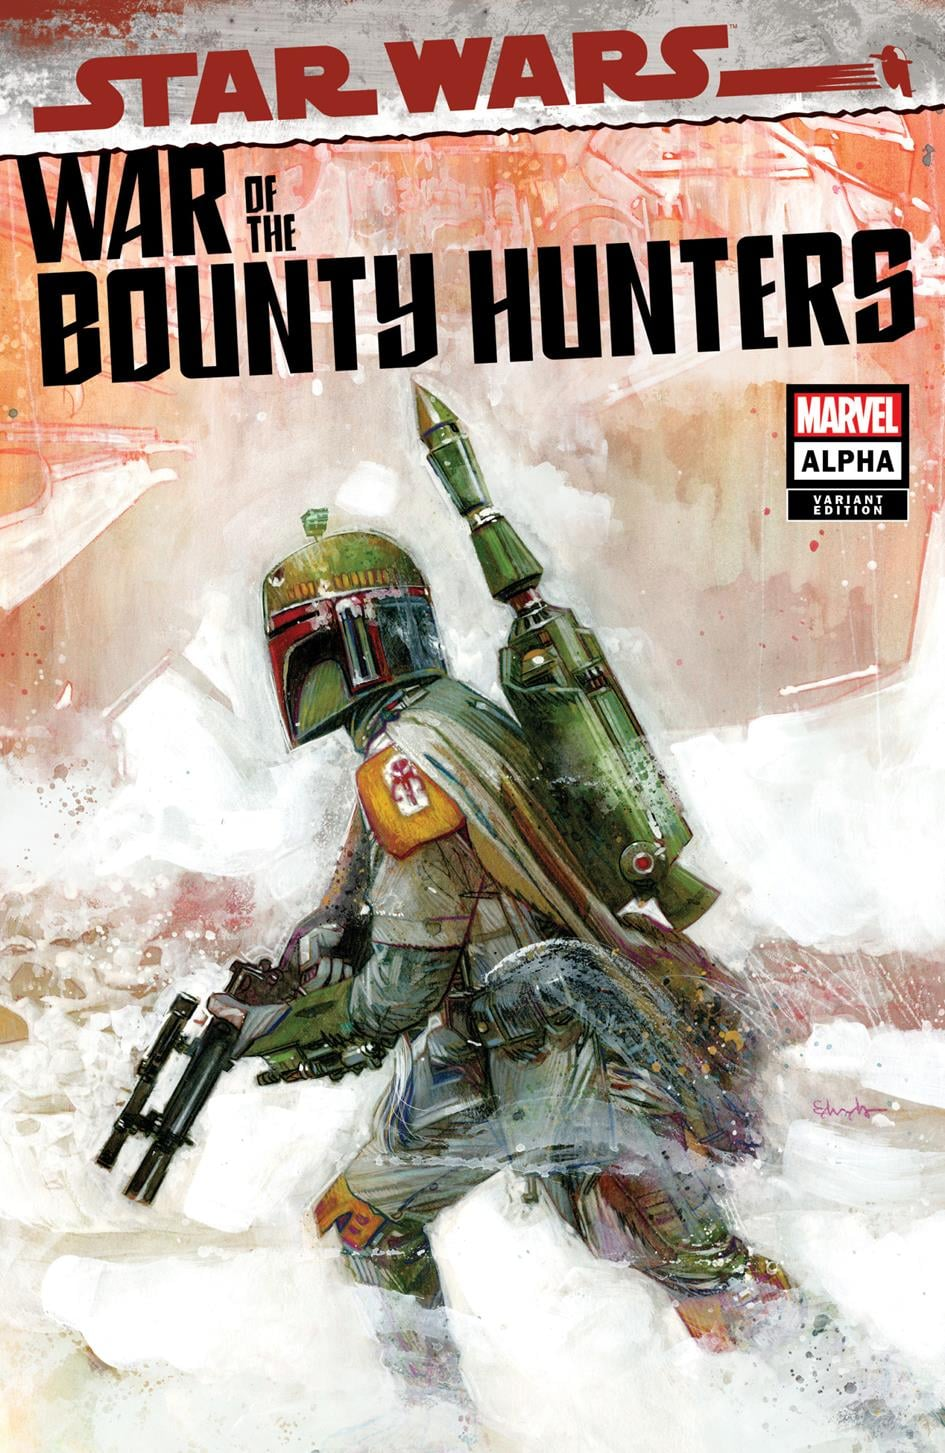 Star Wars: War of the Bounty Hunters Alpha - Ultimate Comics Variant